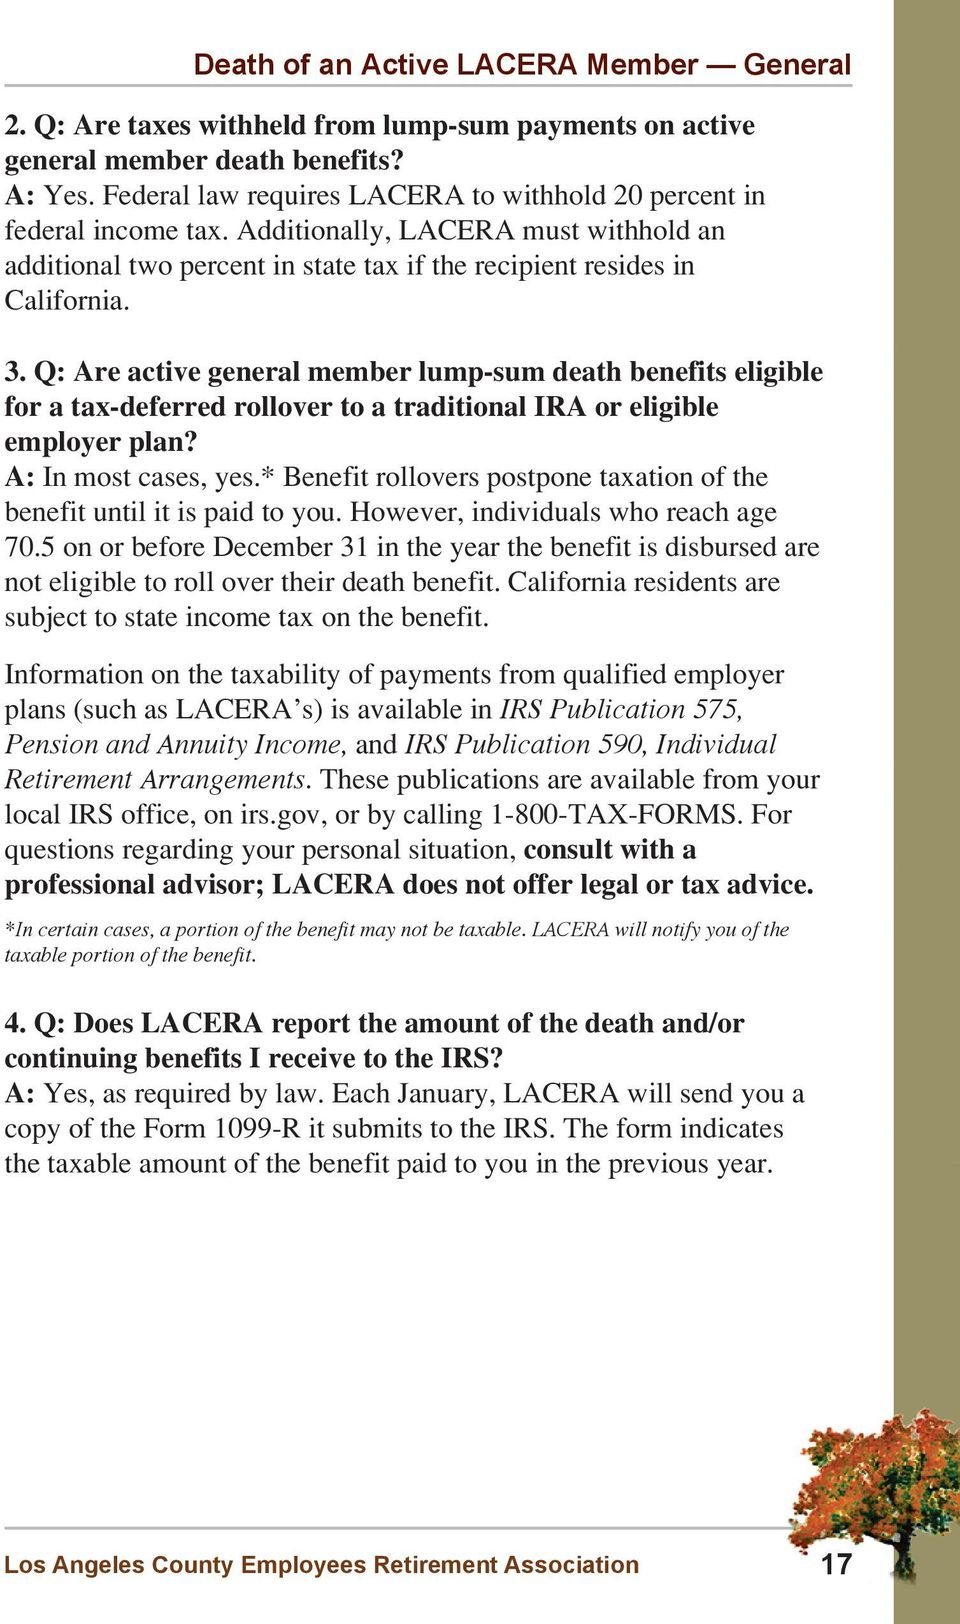 Q: Are active general member lump-sum death benefits eligible for a tax-deferred rollover to a traditional IRA or eligible employer plan? A: In most cases, yes.